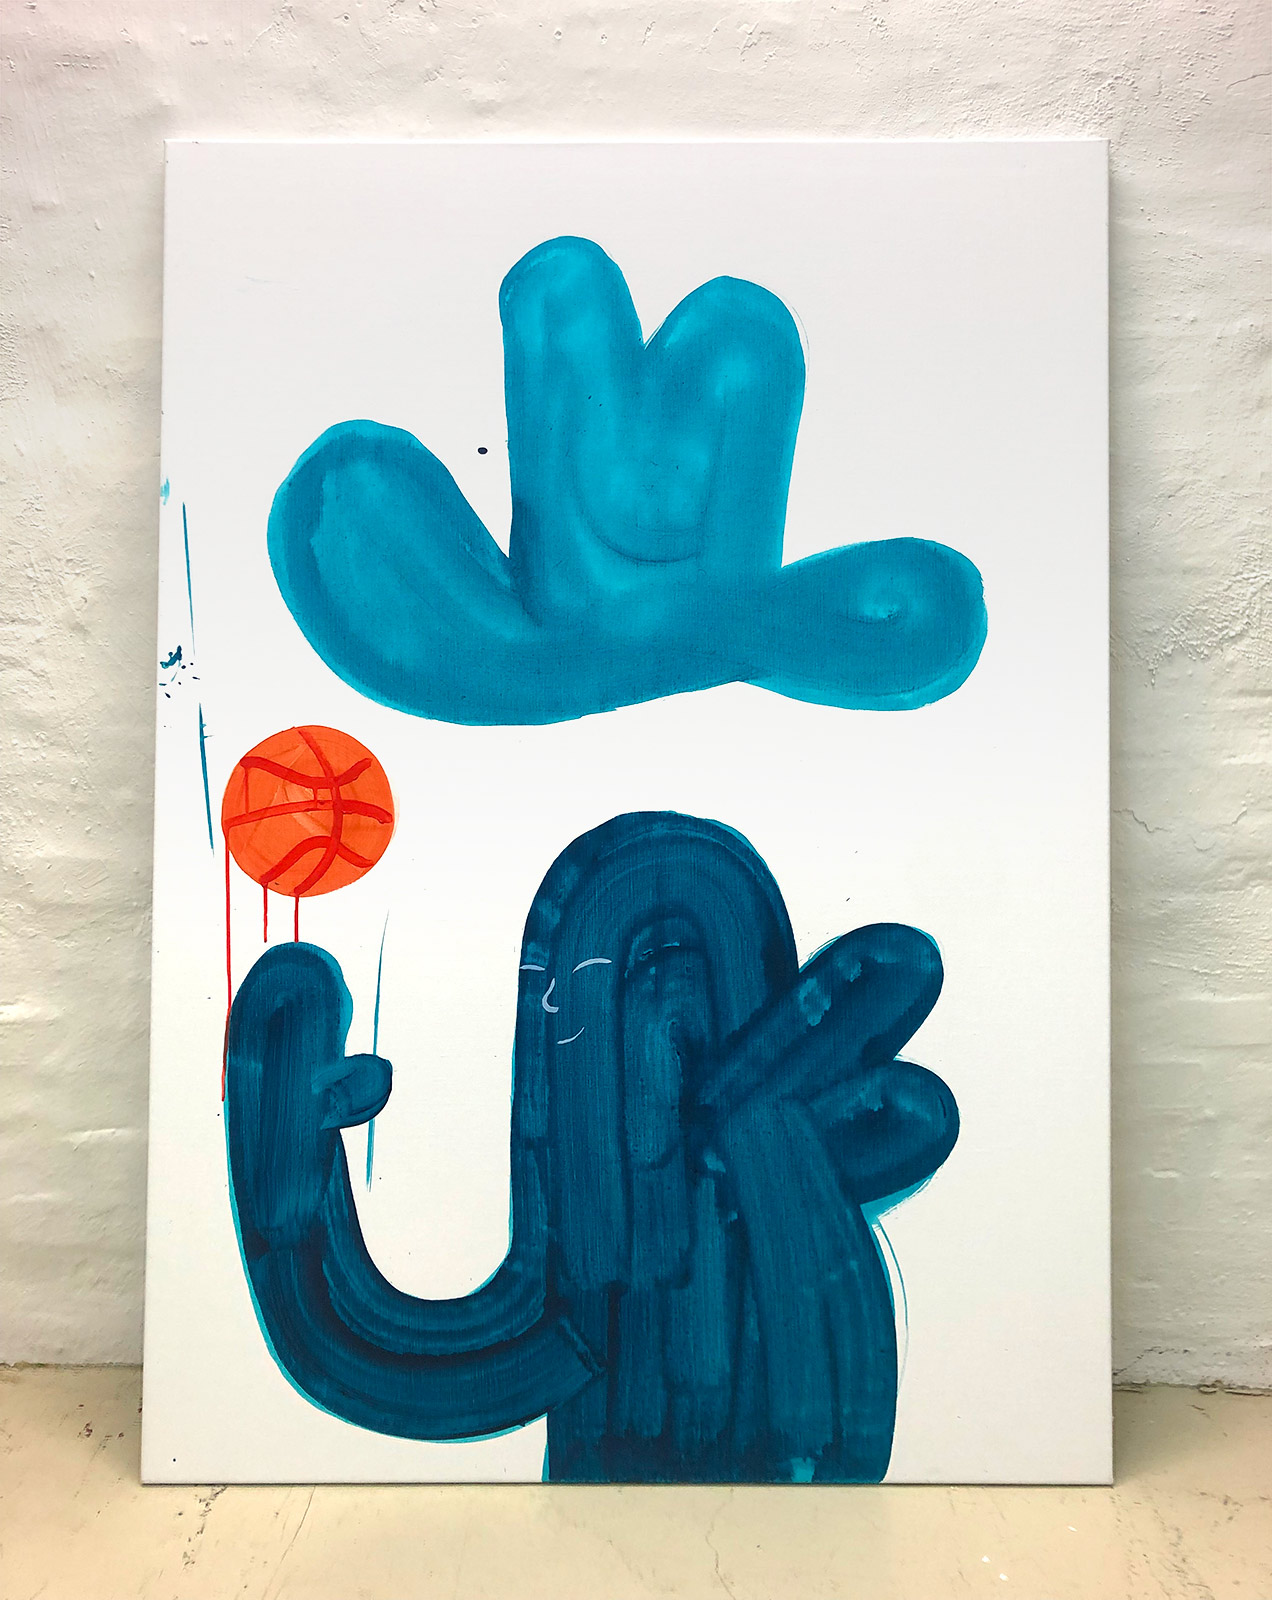 paintings, family-friendly, graphical, illustrative, minimalistic, pop, bodies, people, sport, blue, orange, turquoise, white, acrylic, flax-canvas, abstract-forms, amusing, contemporary-art, copenhagen, danish, decorative, design, hats, interior, interior-design, modern, modern-art, nordic, pop-art, scandinavien, street-art, Buy original high quality art. Paintings, drawings, limited edition prints & posters by talented artists.